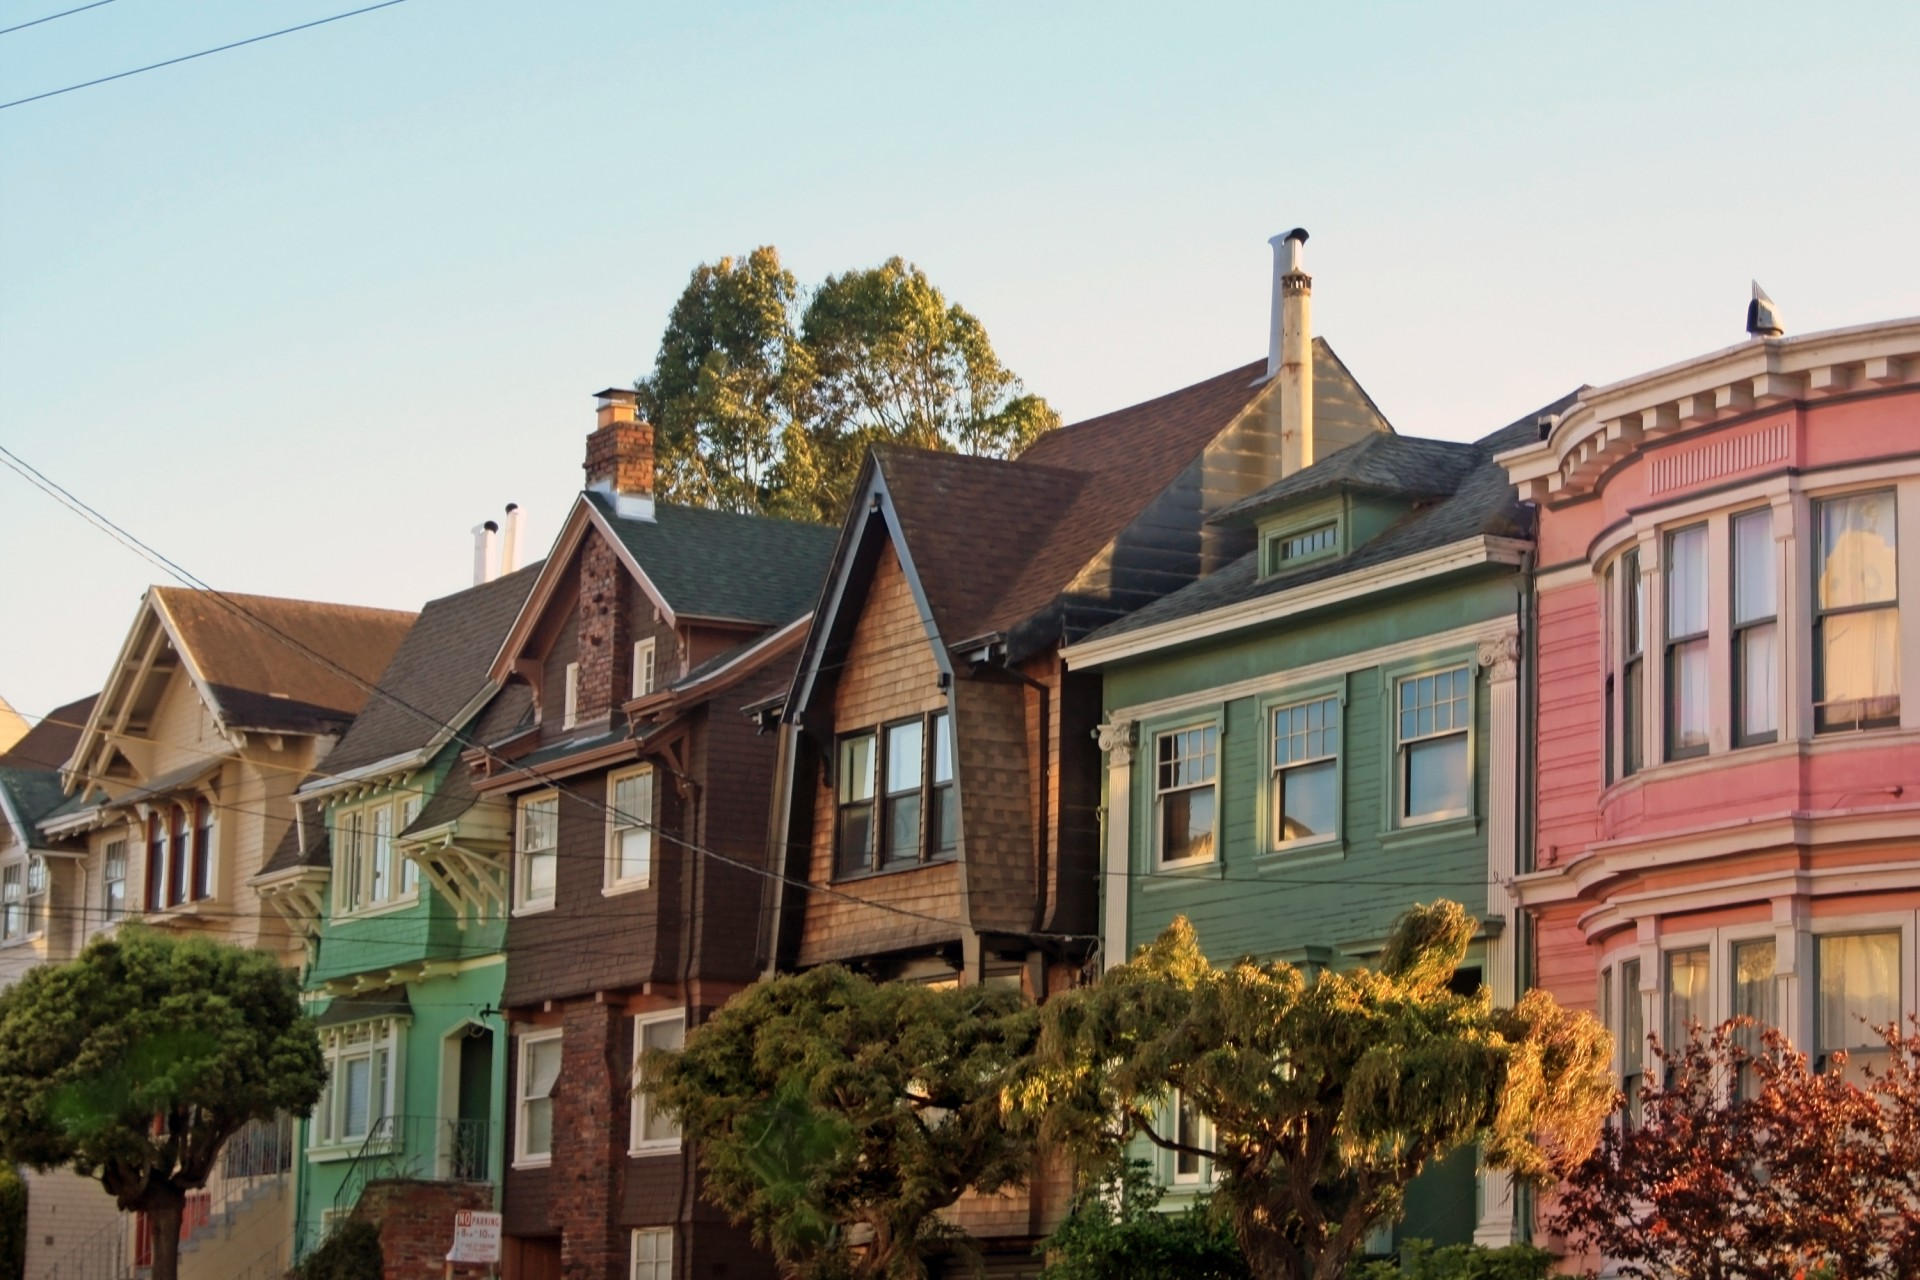 A SHARED FUTURE: WE LIVE HERE TOO: INCORPORATING RESIDENTS' VOICES IN MITIGATING THE NEGATIVE IMPACTS OF GENTRIFICATION